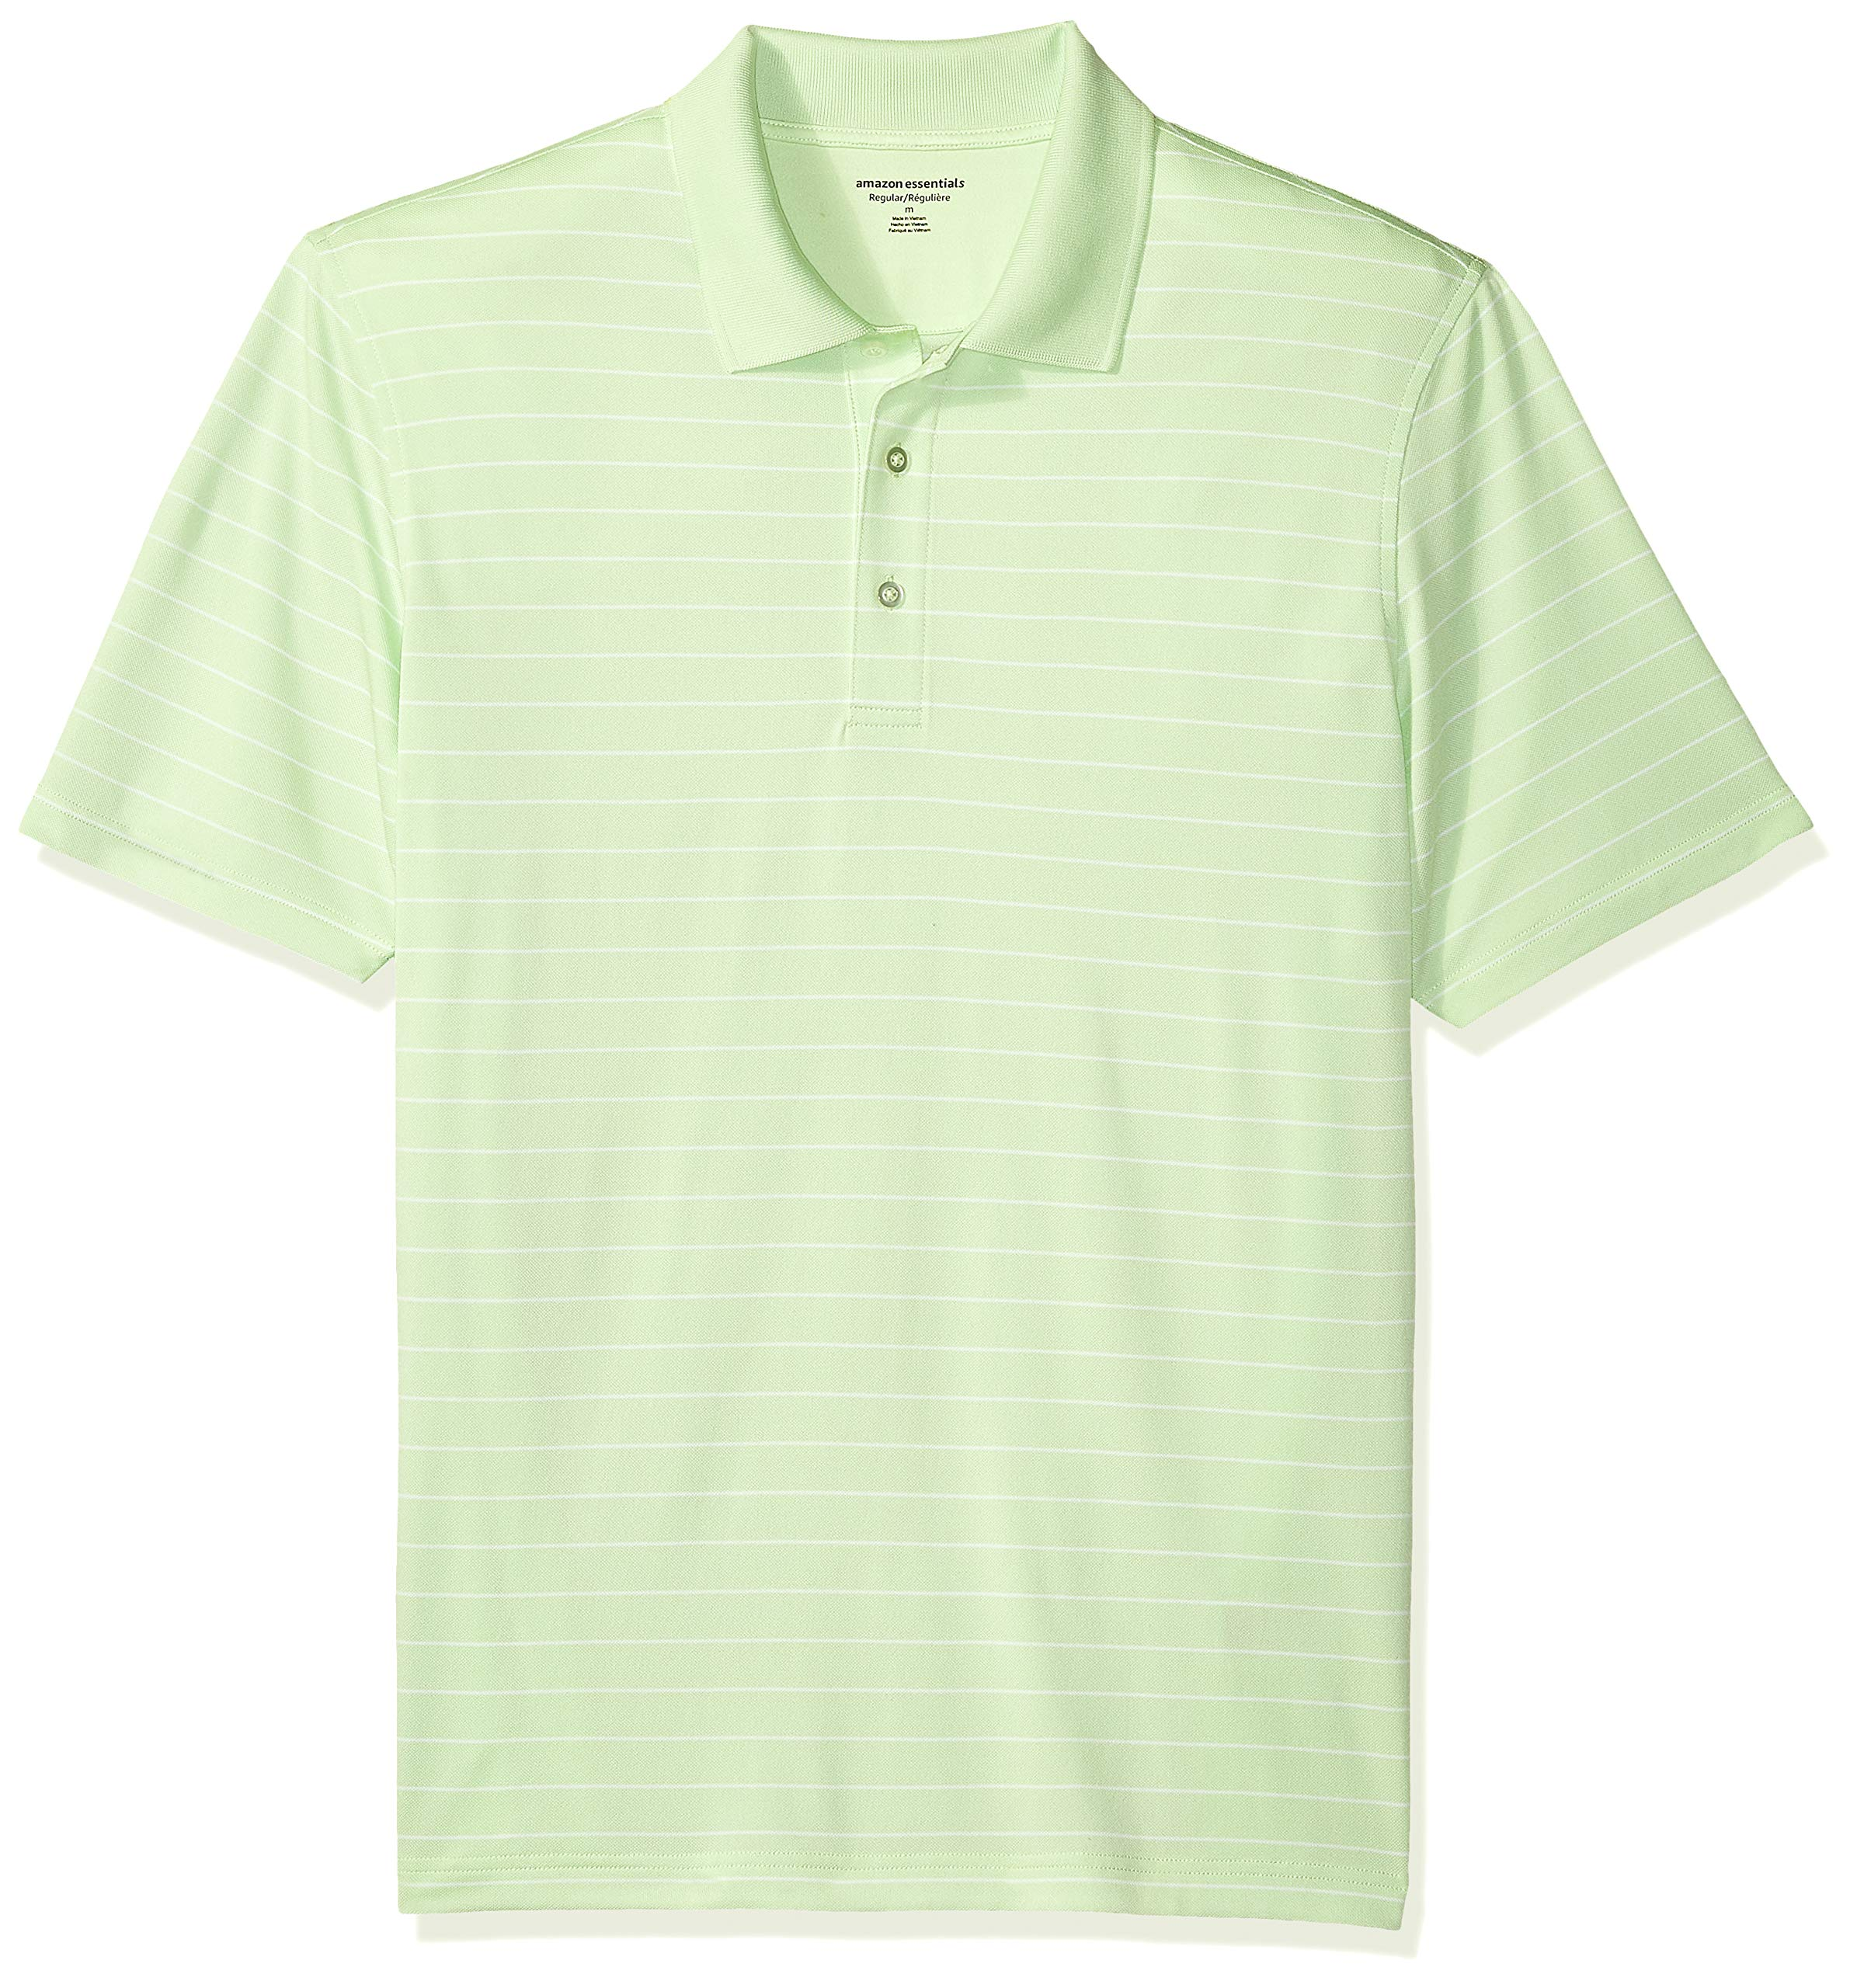 Amazon Essentials Men's Regular-Fit Quick-Dry Golf Polo Shirt, Lime Green Stripe, X-Small